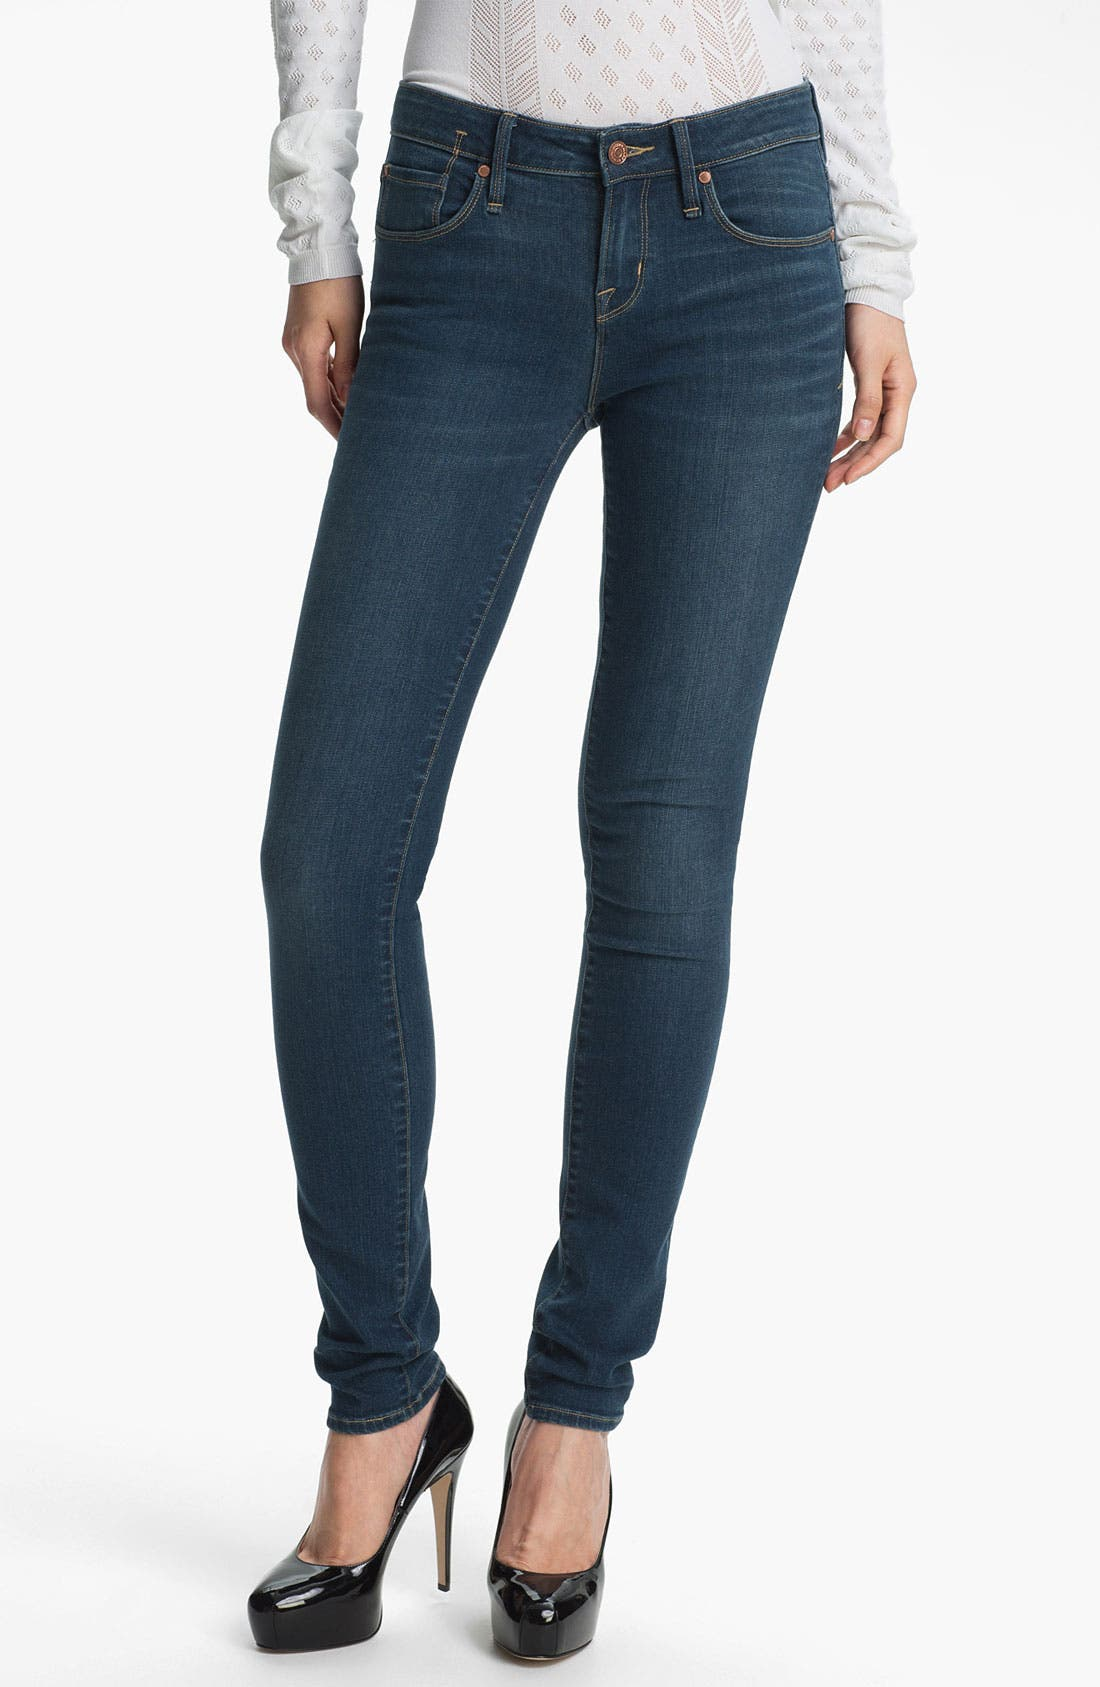 Alternate Image 1 Selected - MARC BY MARC JACOBS 'Gaia' Super Skinny Stretch Jeans (Sammy)